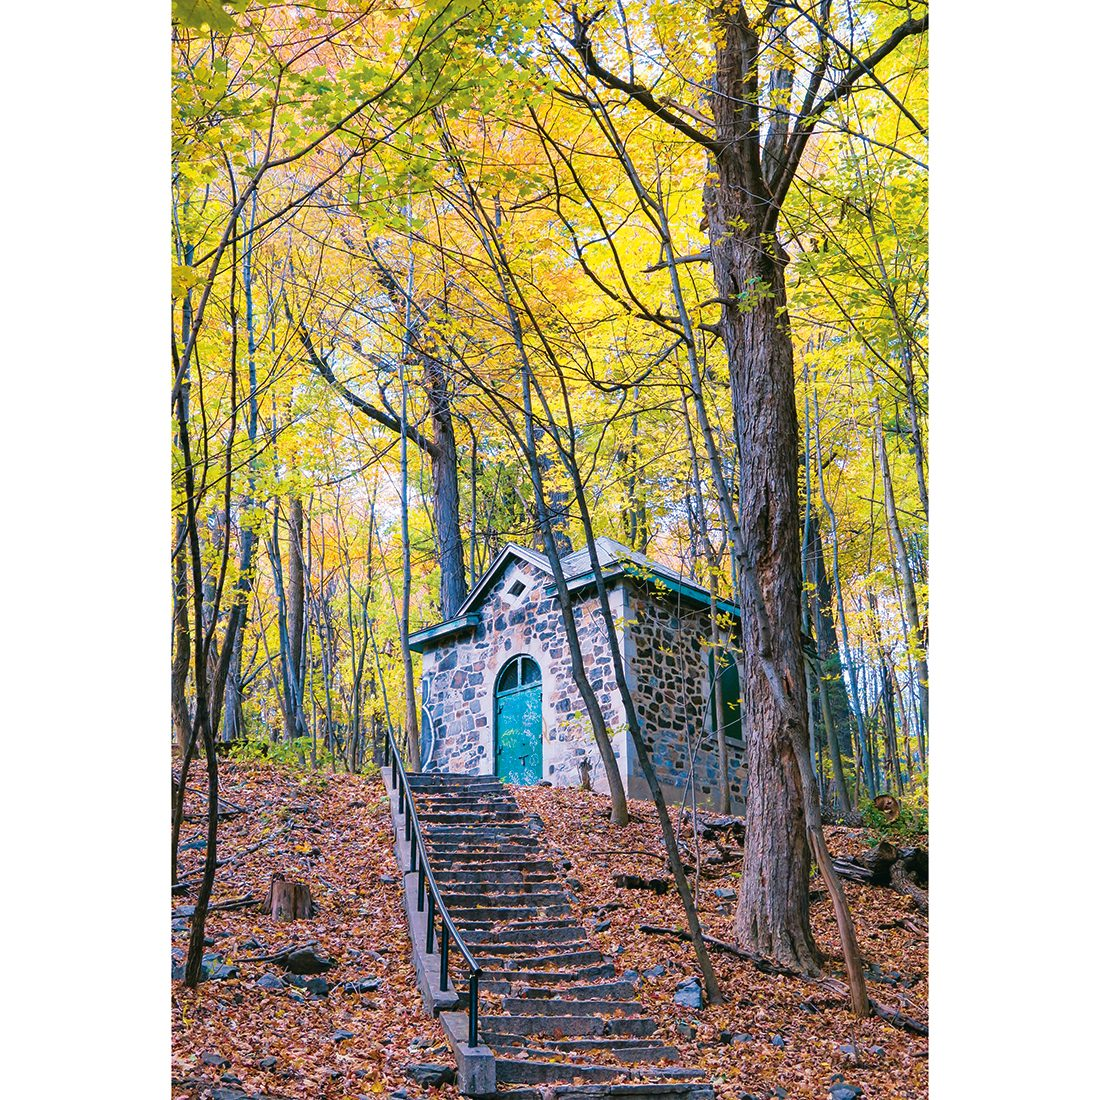 Autumn in Canada - Mount Royal Park in fall